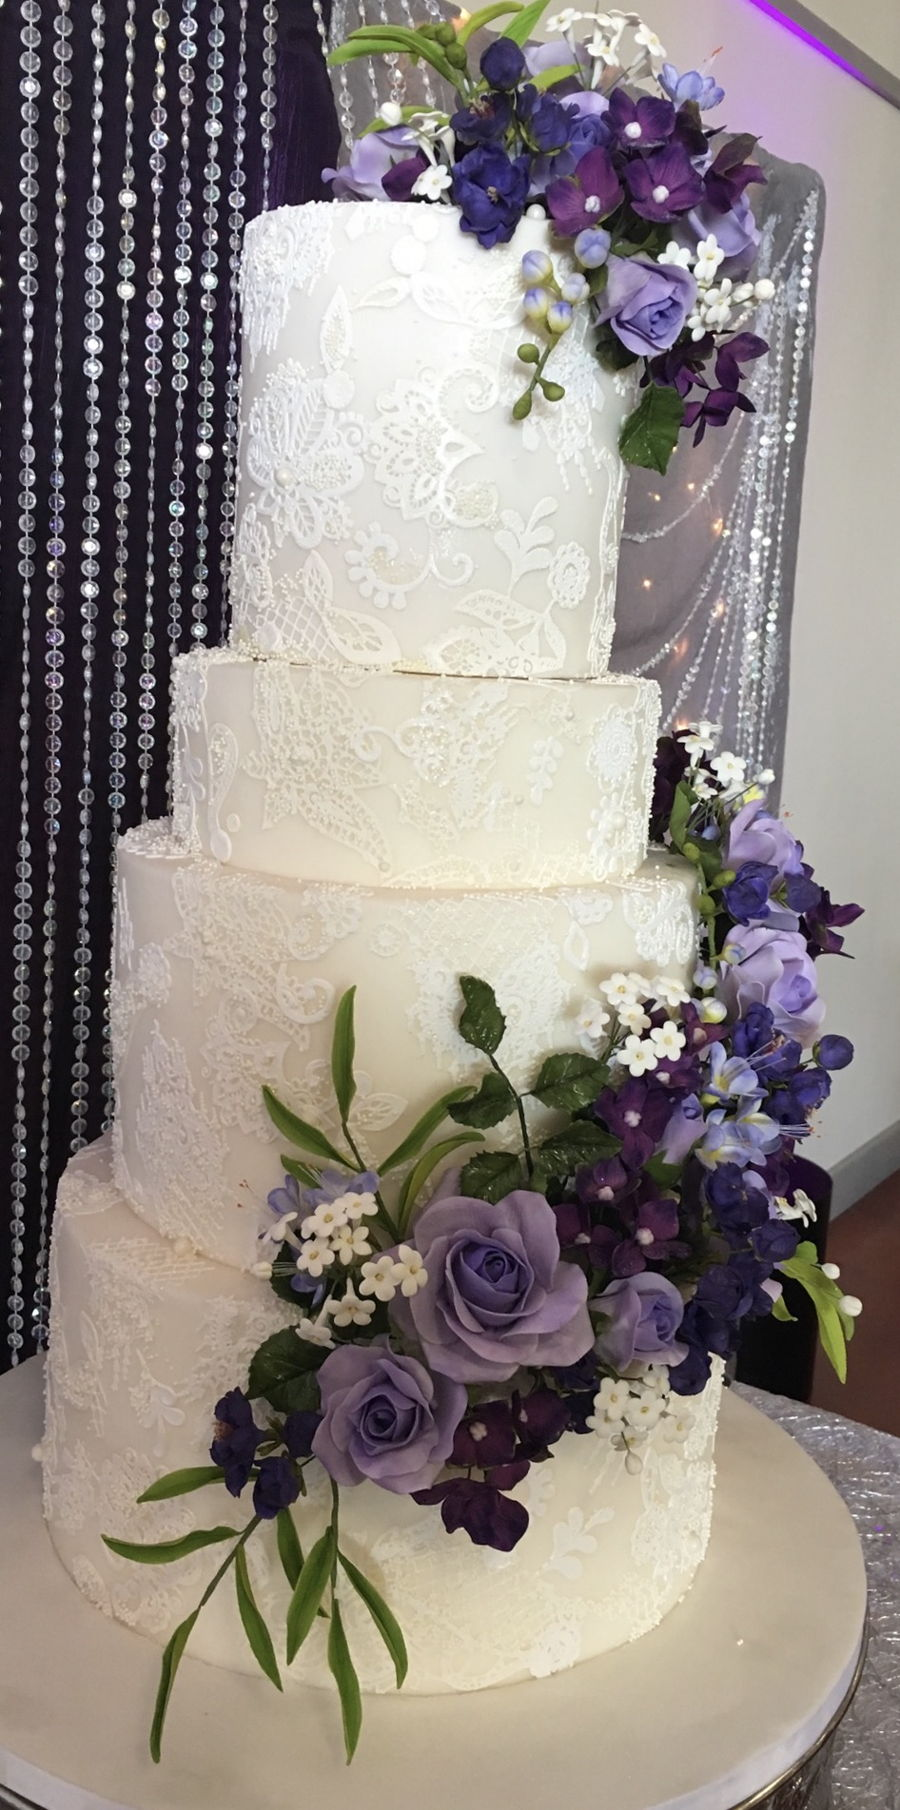 Purple And Lace Wedding Cake - CakeCentral.com